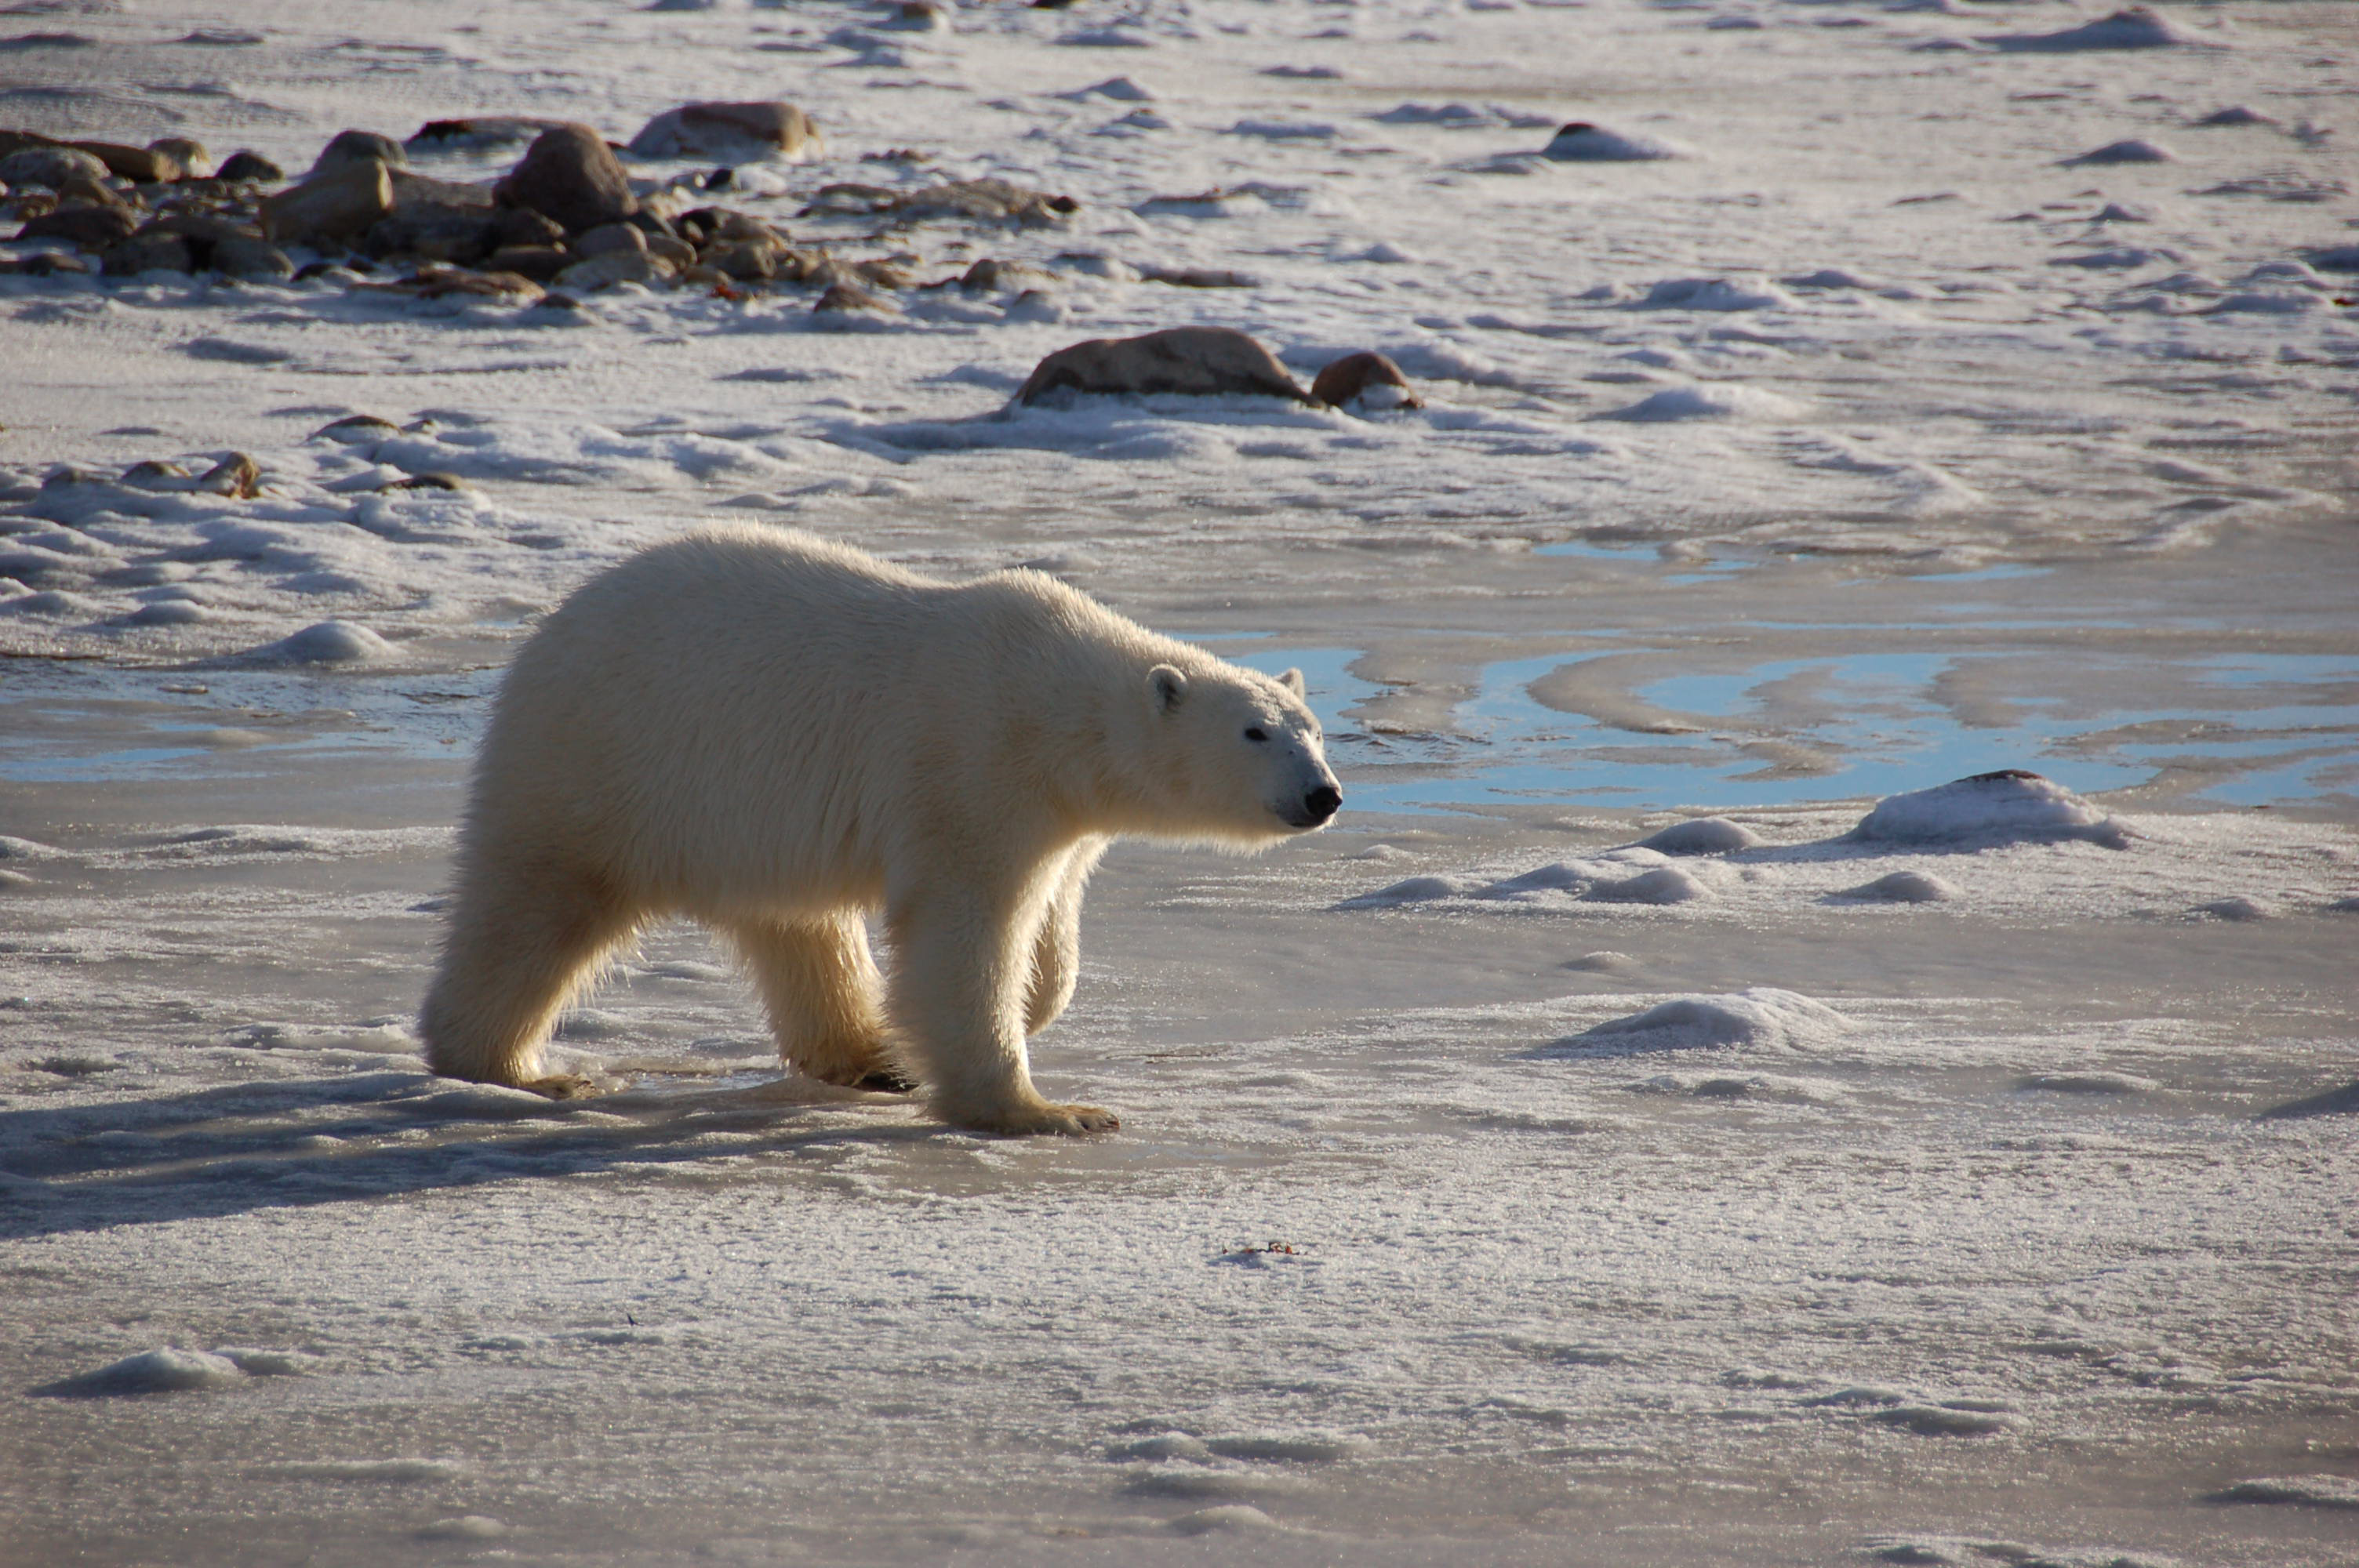 A female polar bear walks in the tidal area along Canadas Hudson Bay in autumn 2010, waiting for ice to form. (Credit: Steven C. Amstrup, Polar Bears International)